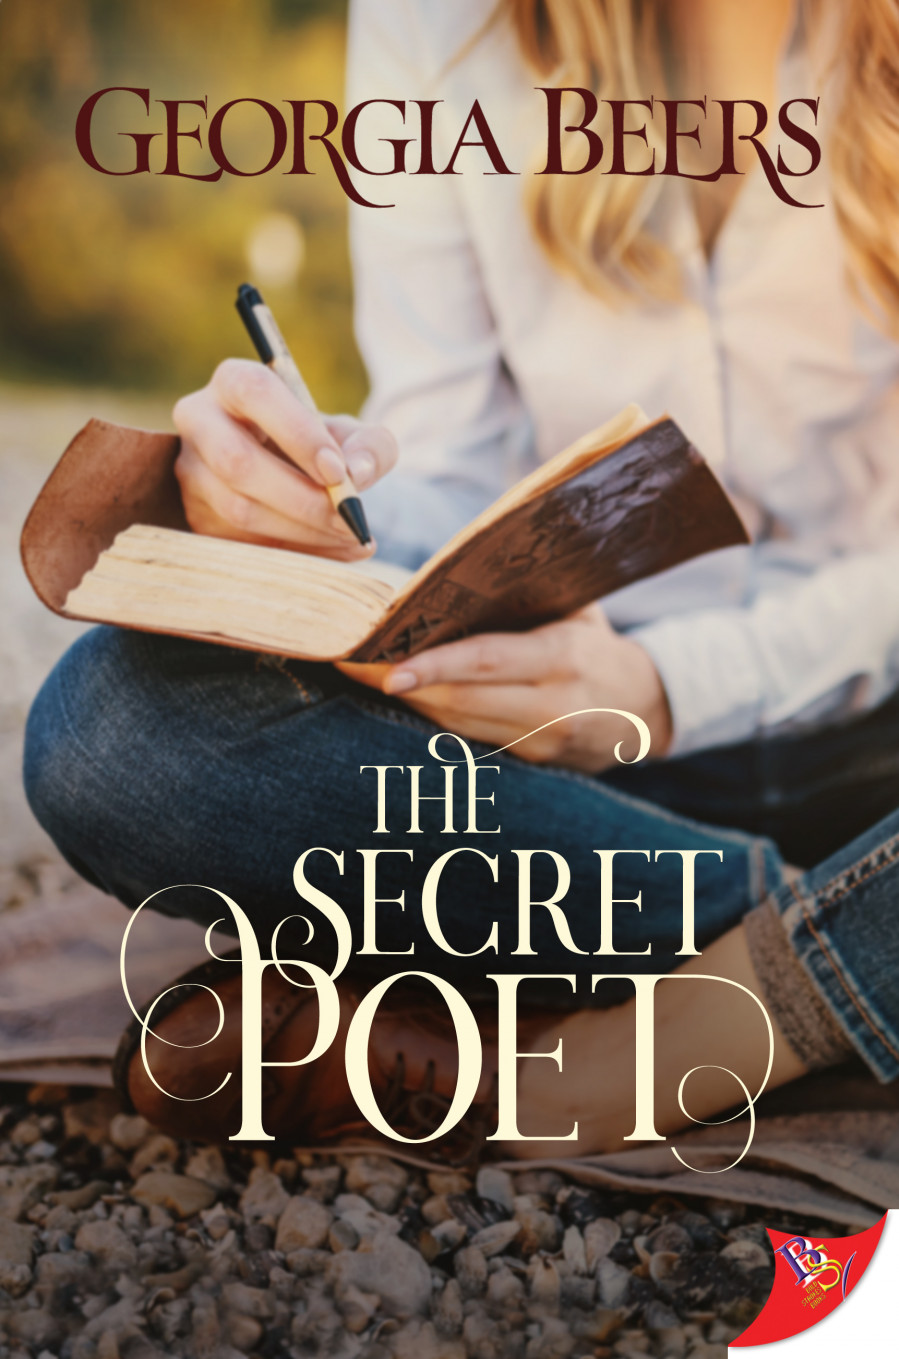 The Secret Poet